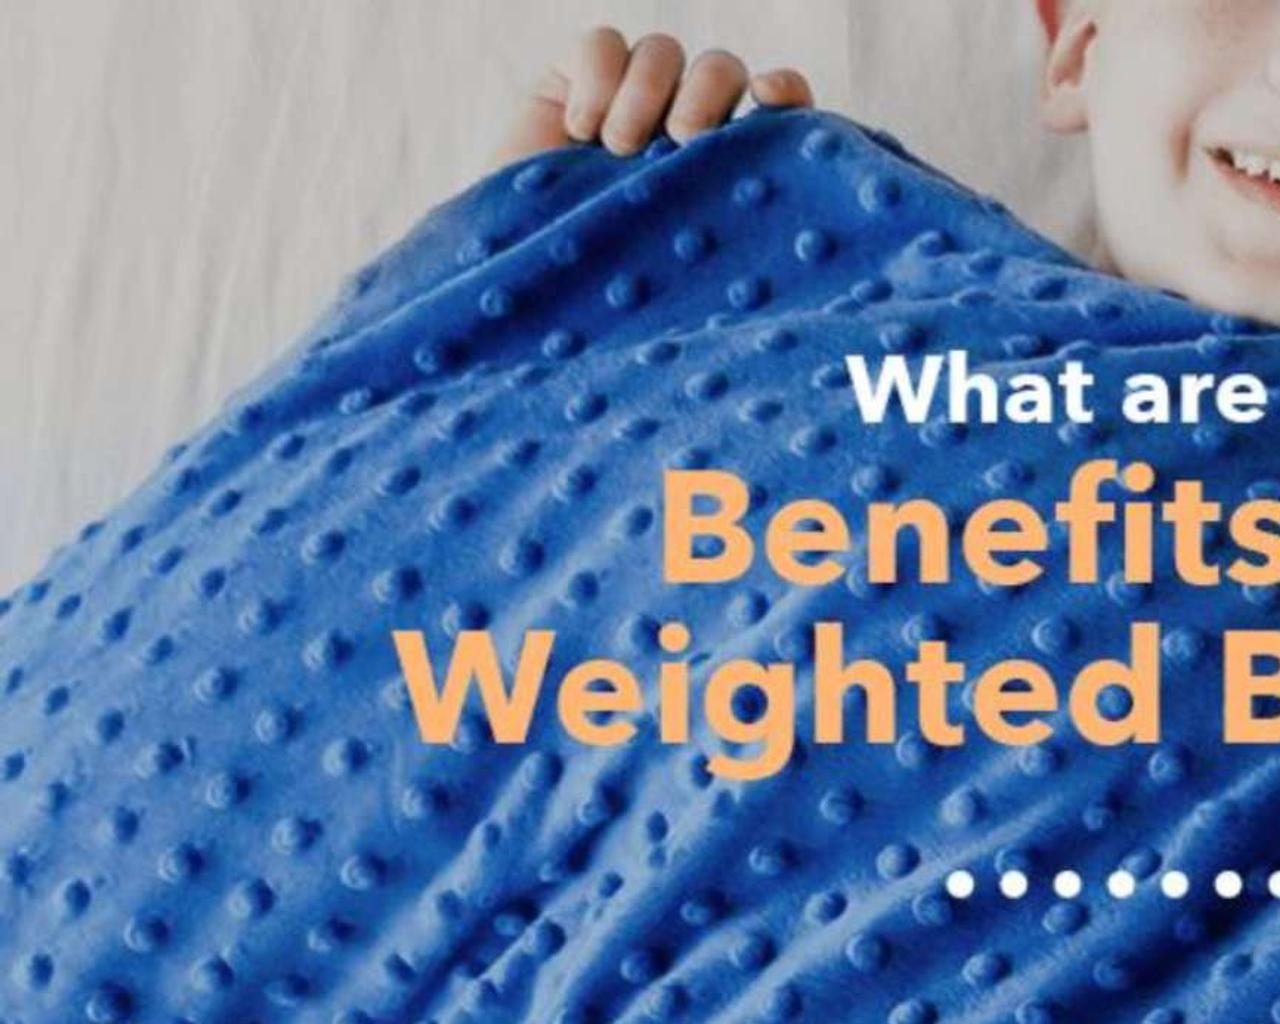 Weight blankets can be a valuable tool to combat insomnia.